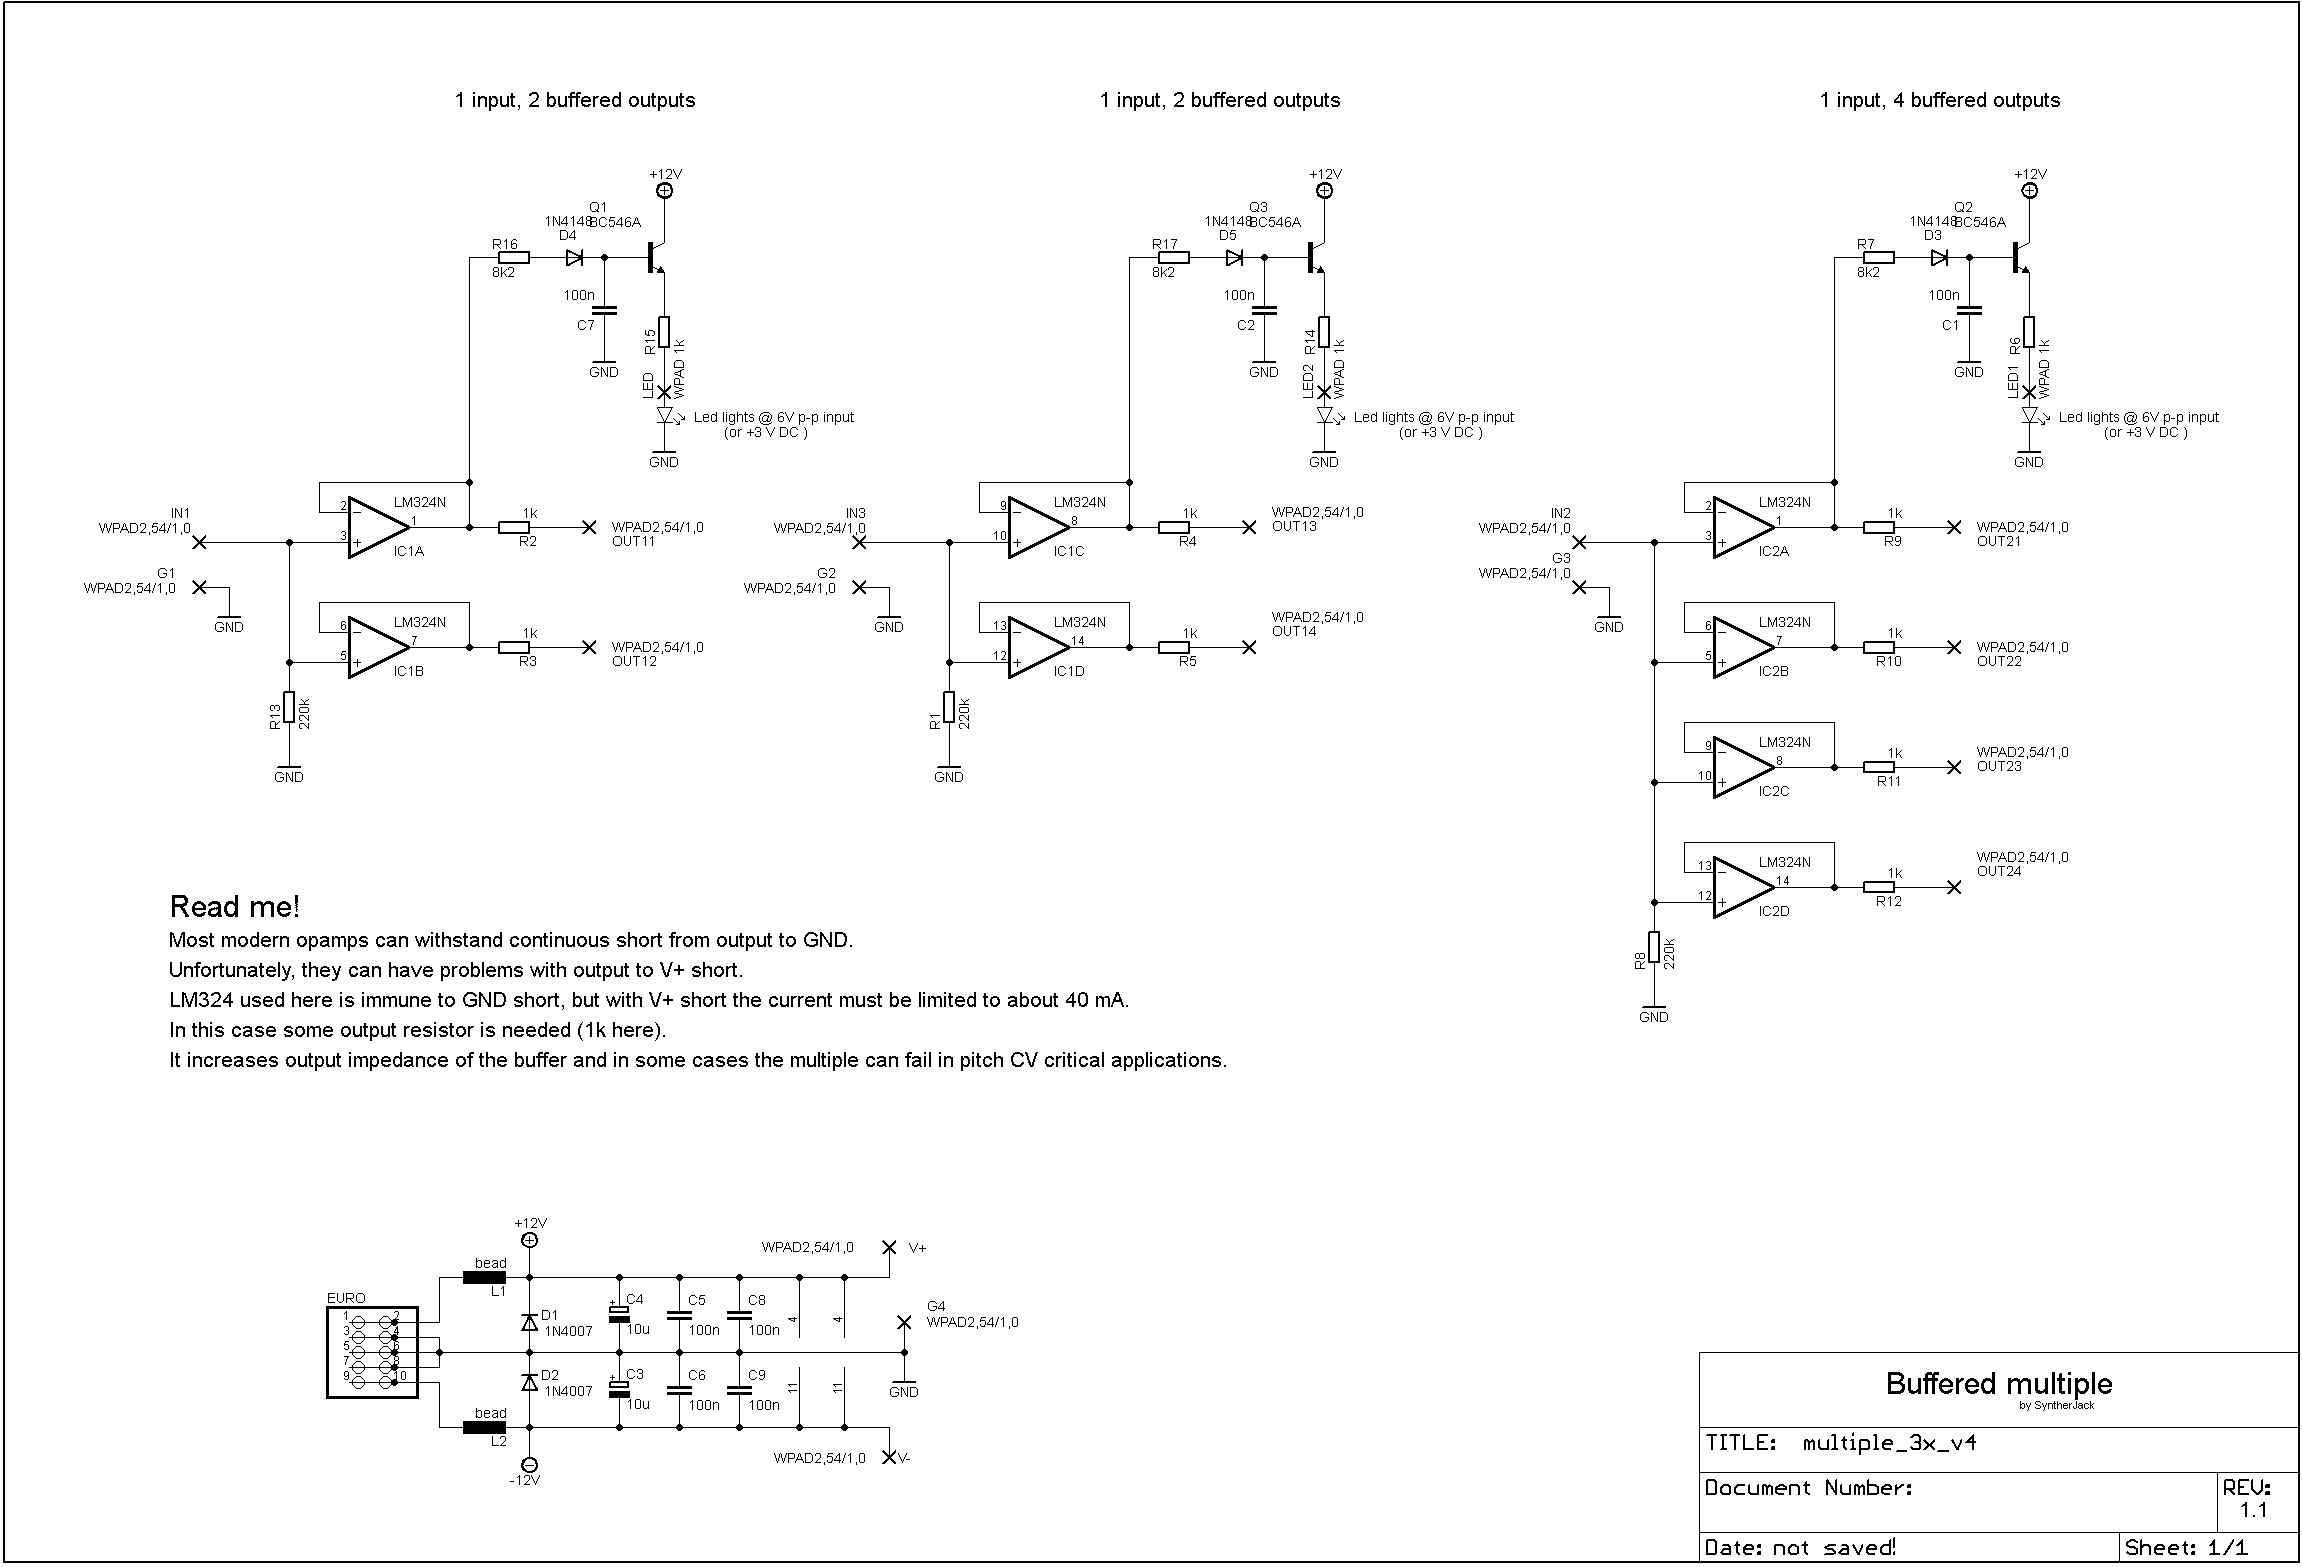 Active (buffered) multiple schematic